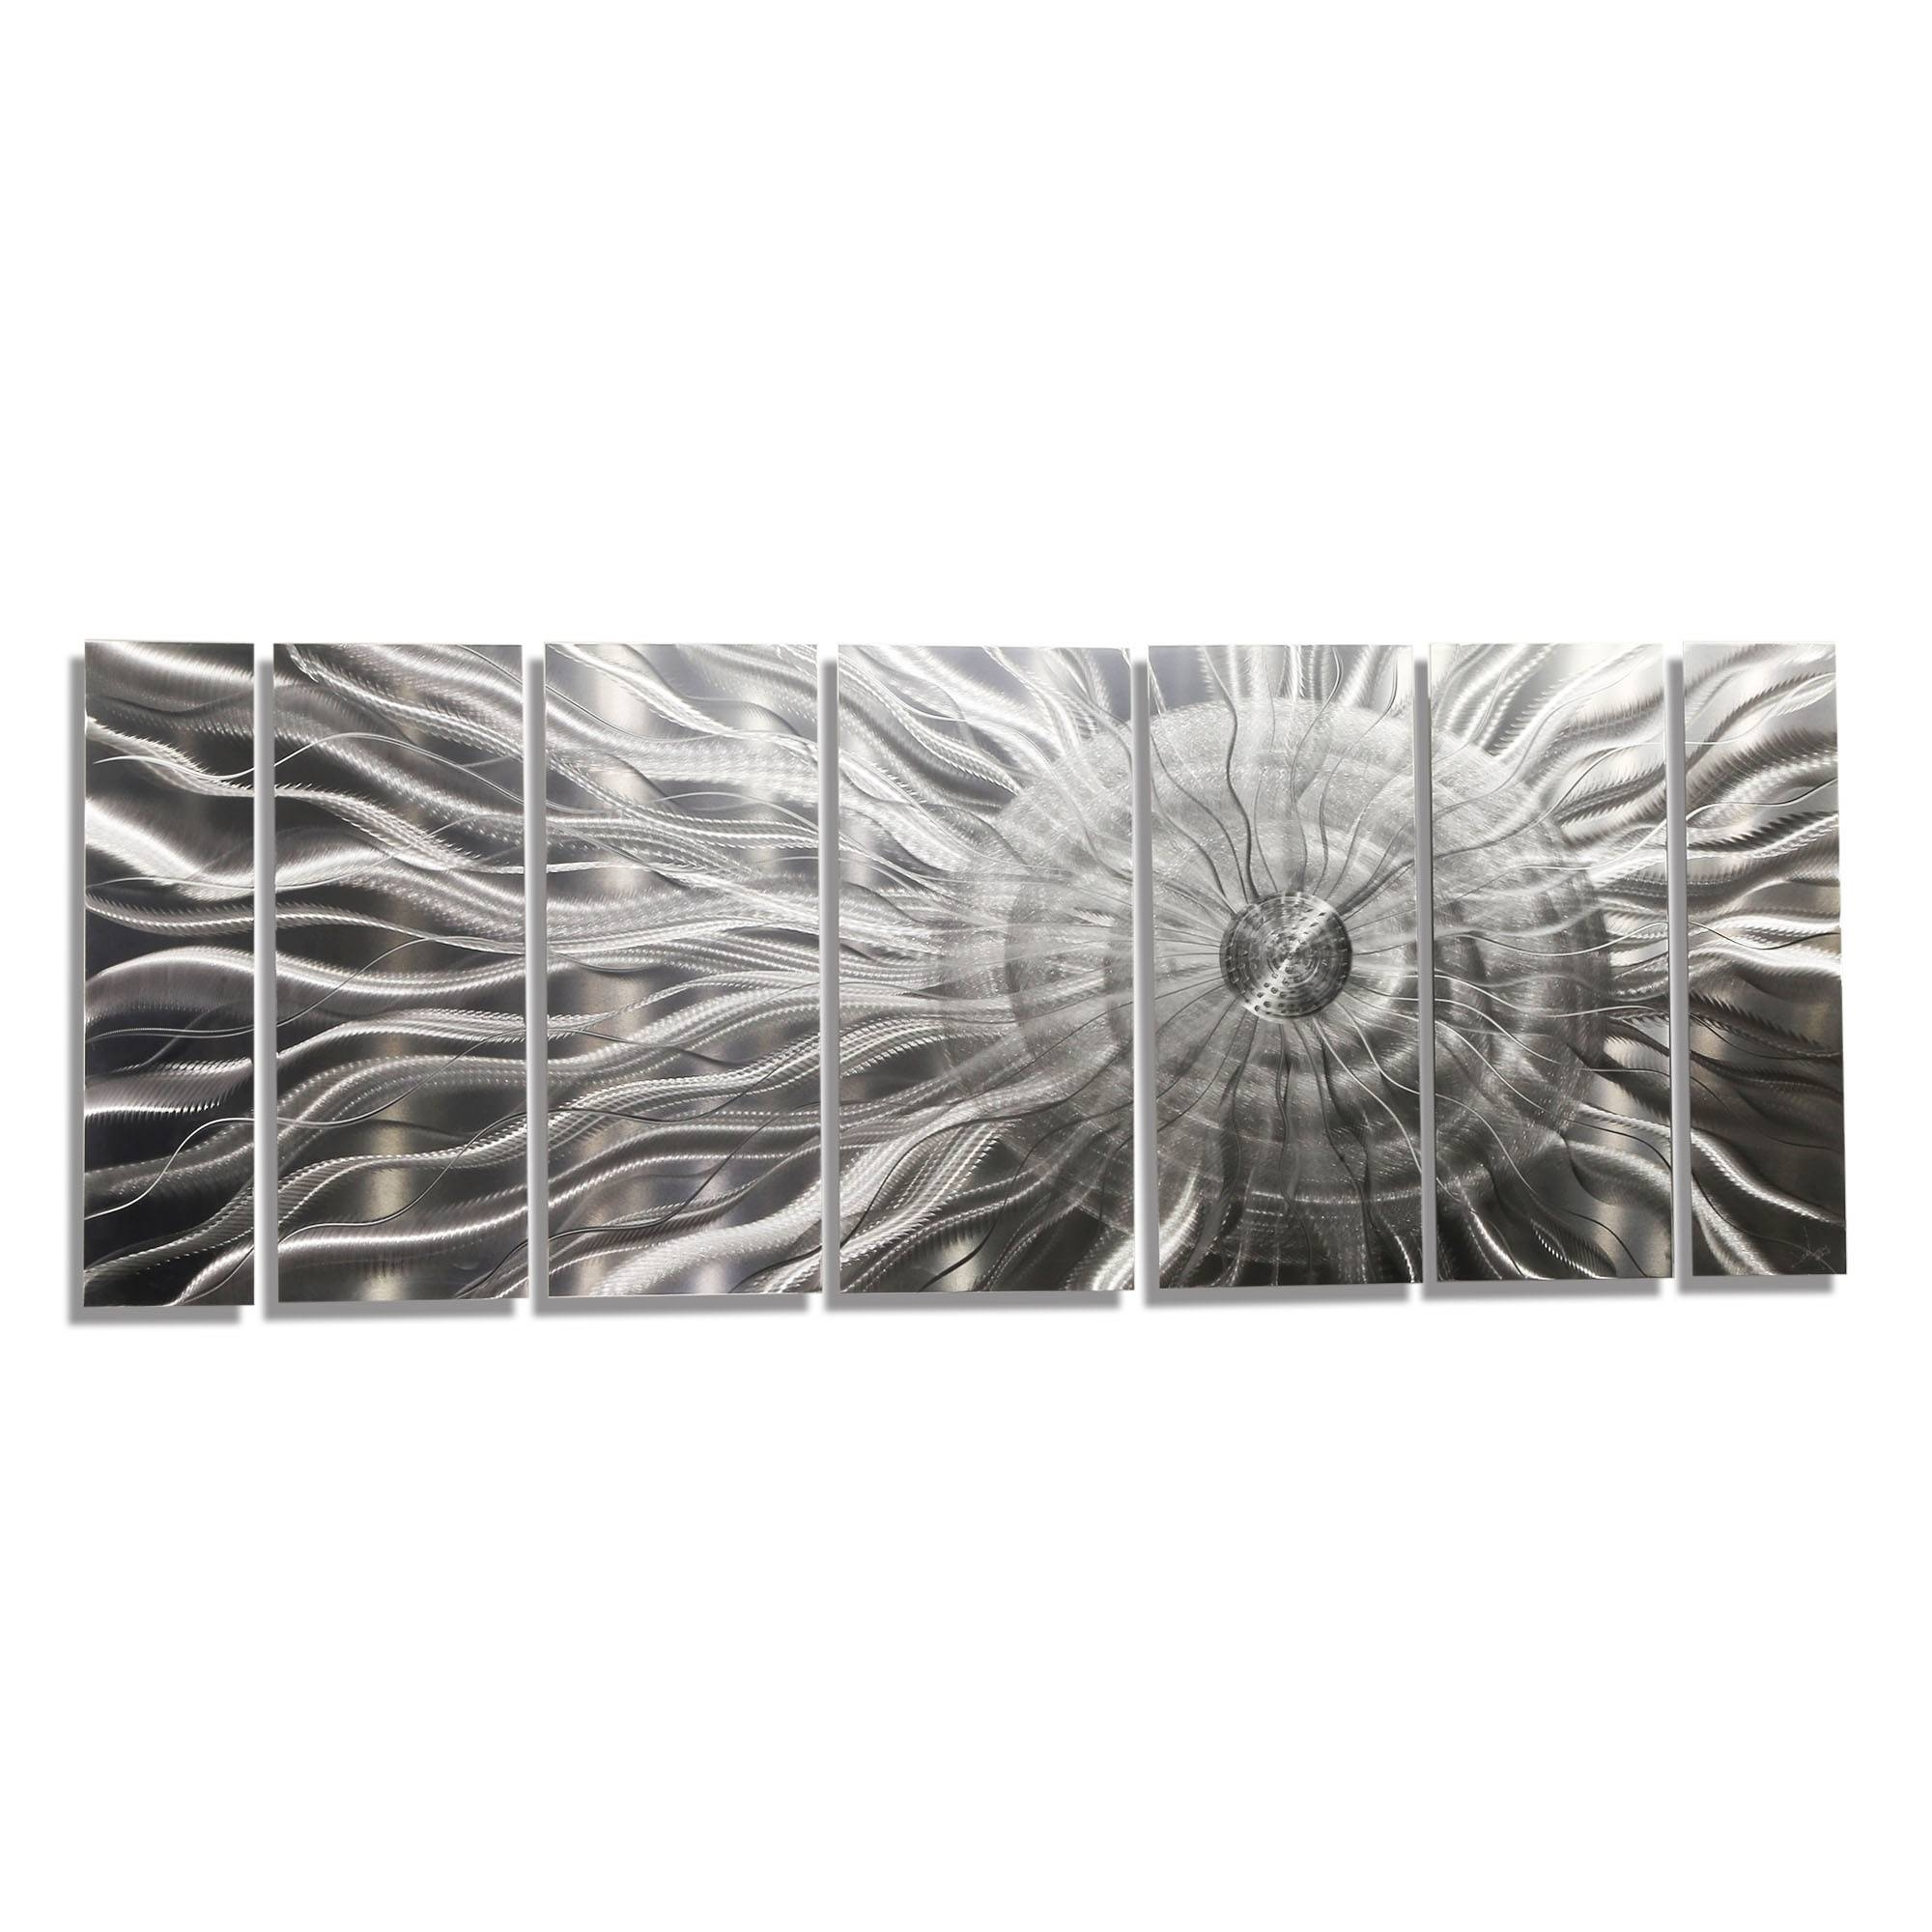 Mesmerizing Metal Sculpture Wall Art Photon Xl Extra Large Metal Intended For Newest Artisan Metal Wall Art (View 19 of 25)